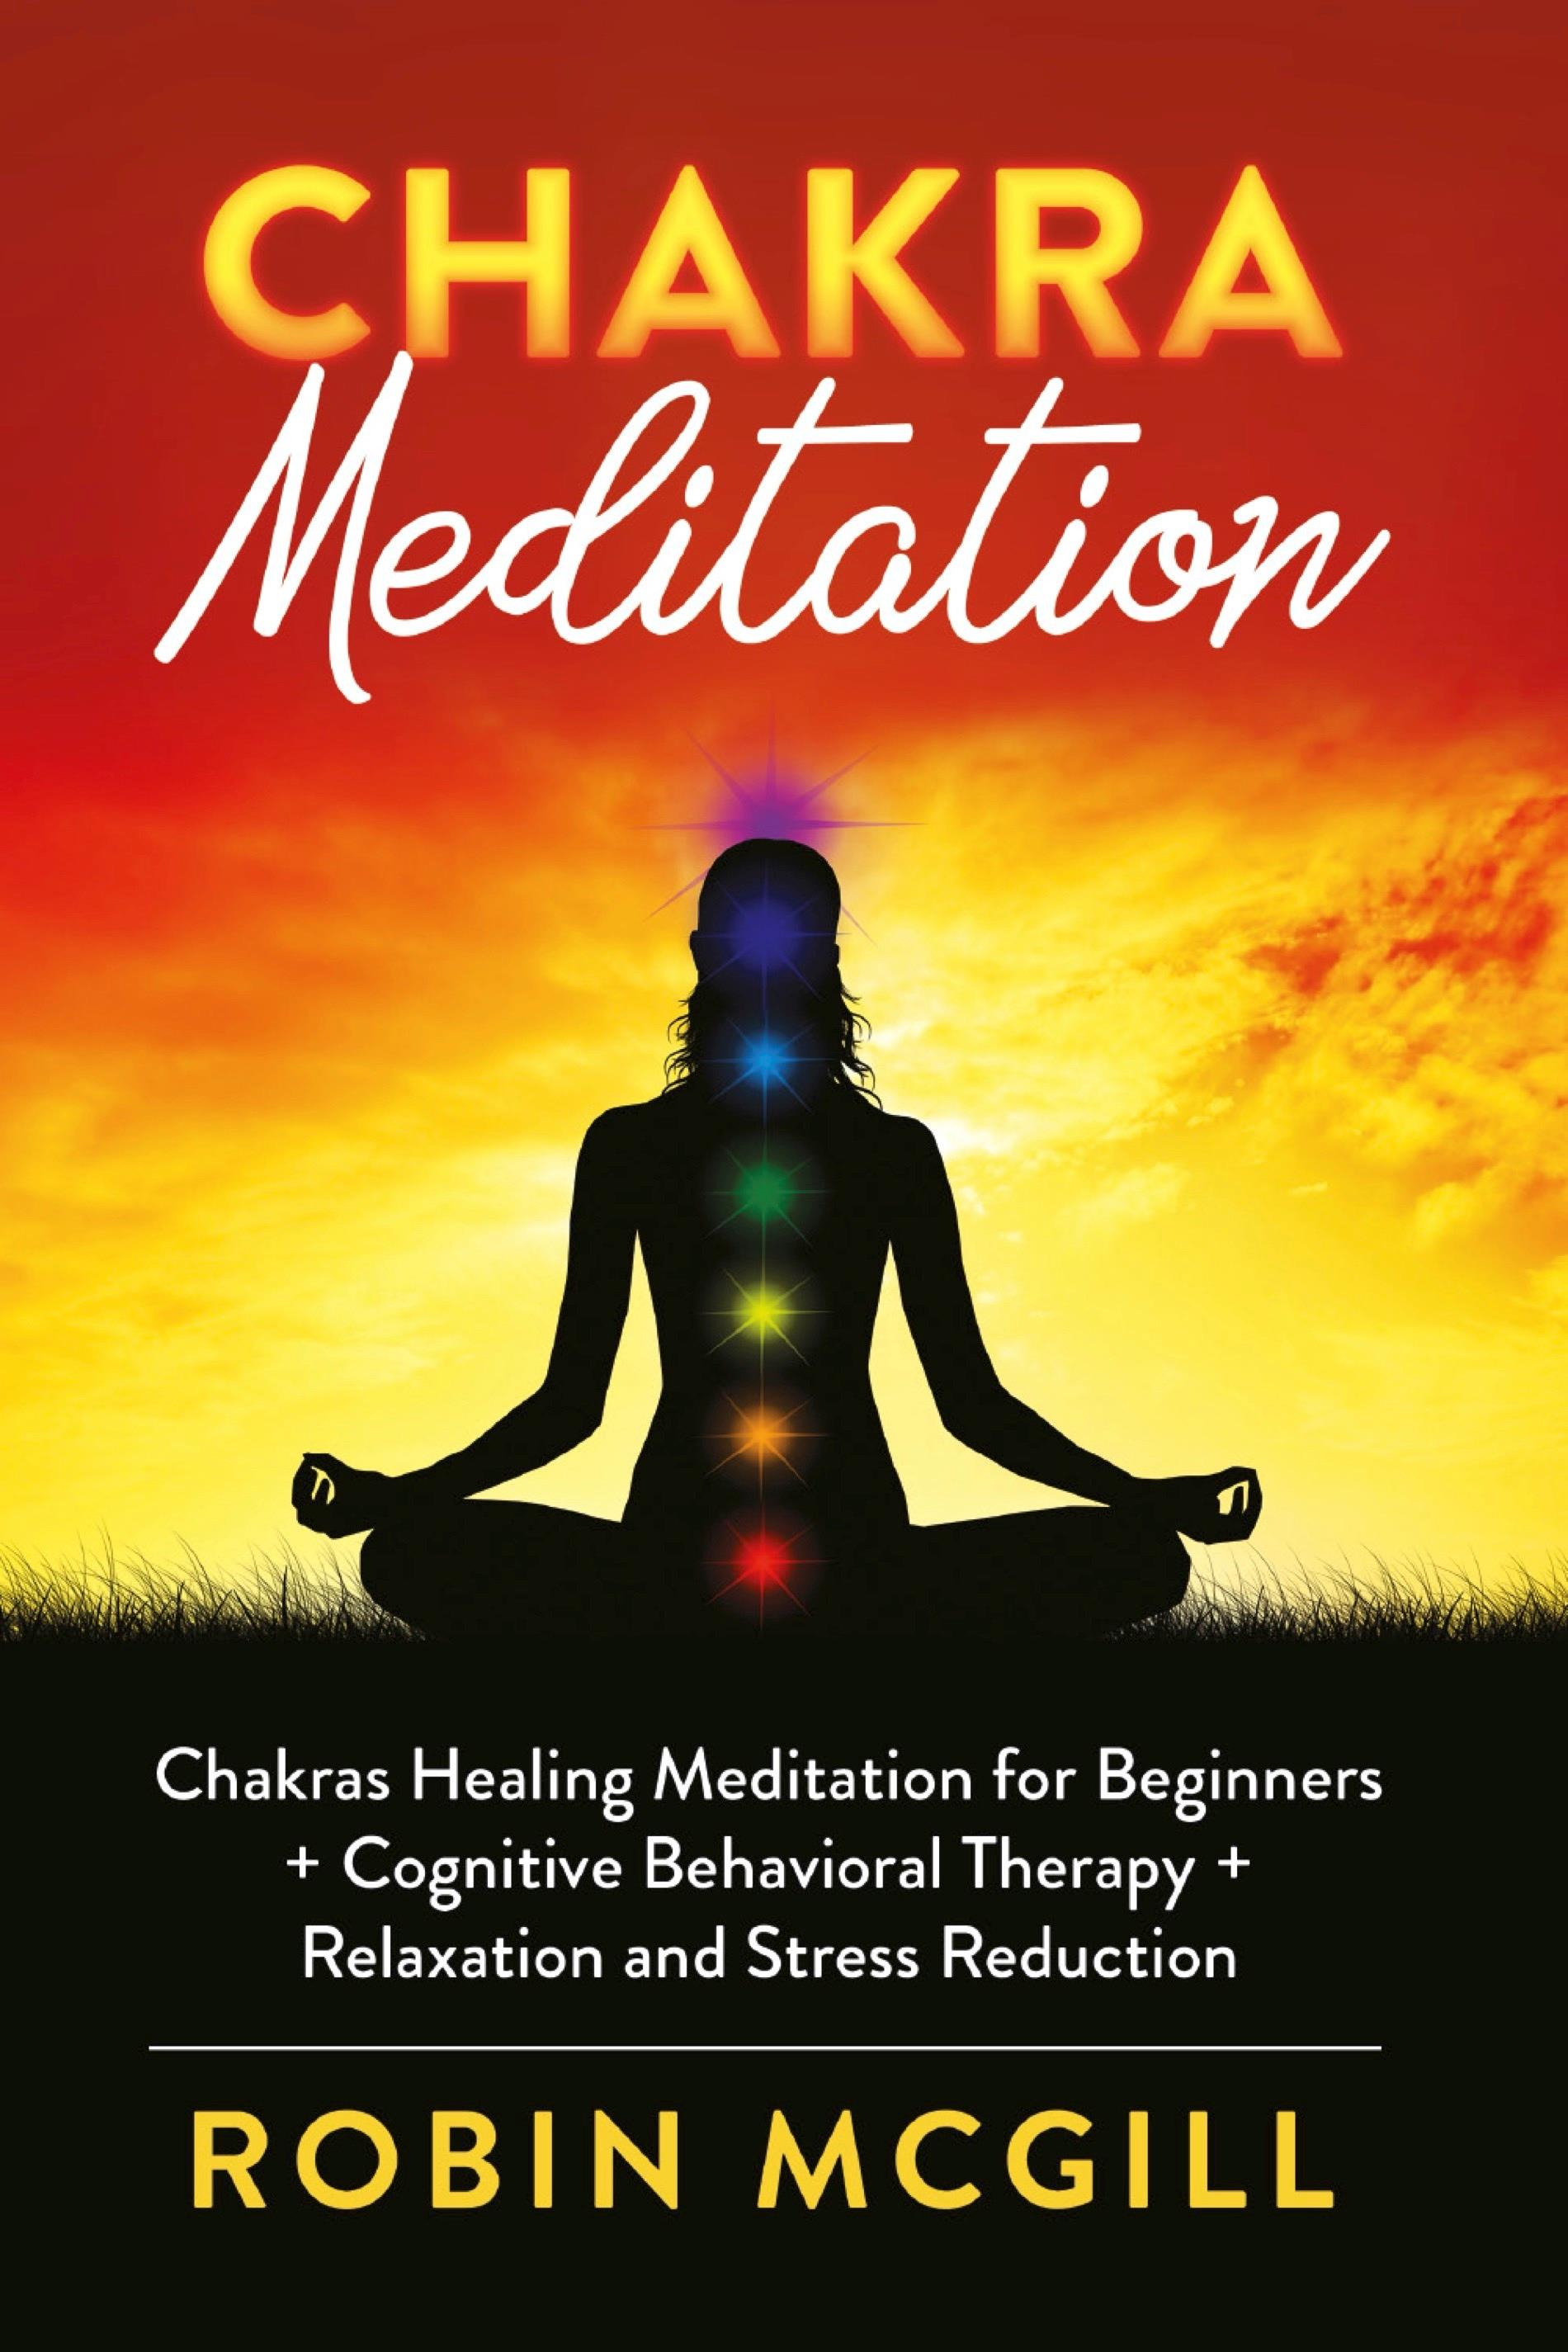 Chakras Healing Meditation for Beginners + Cognitive Behavioral Therapy + Relaxation and Stress Reduction